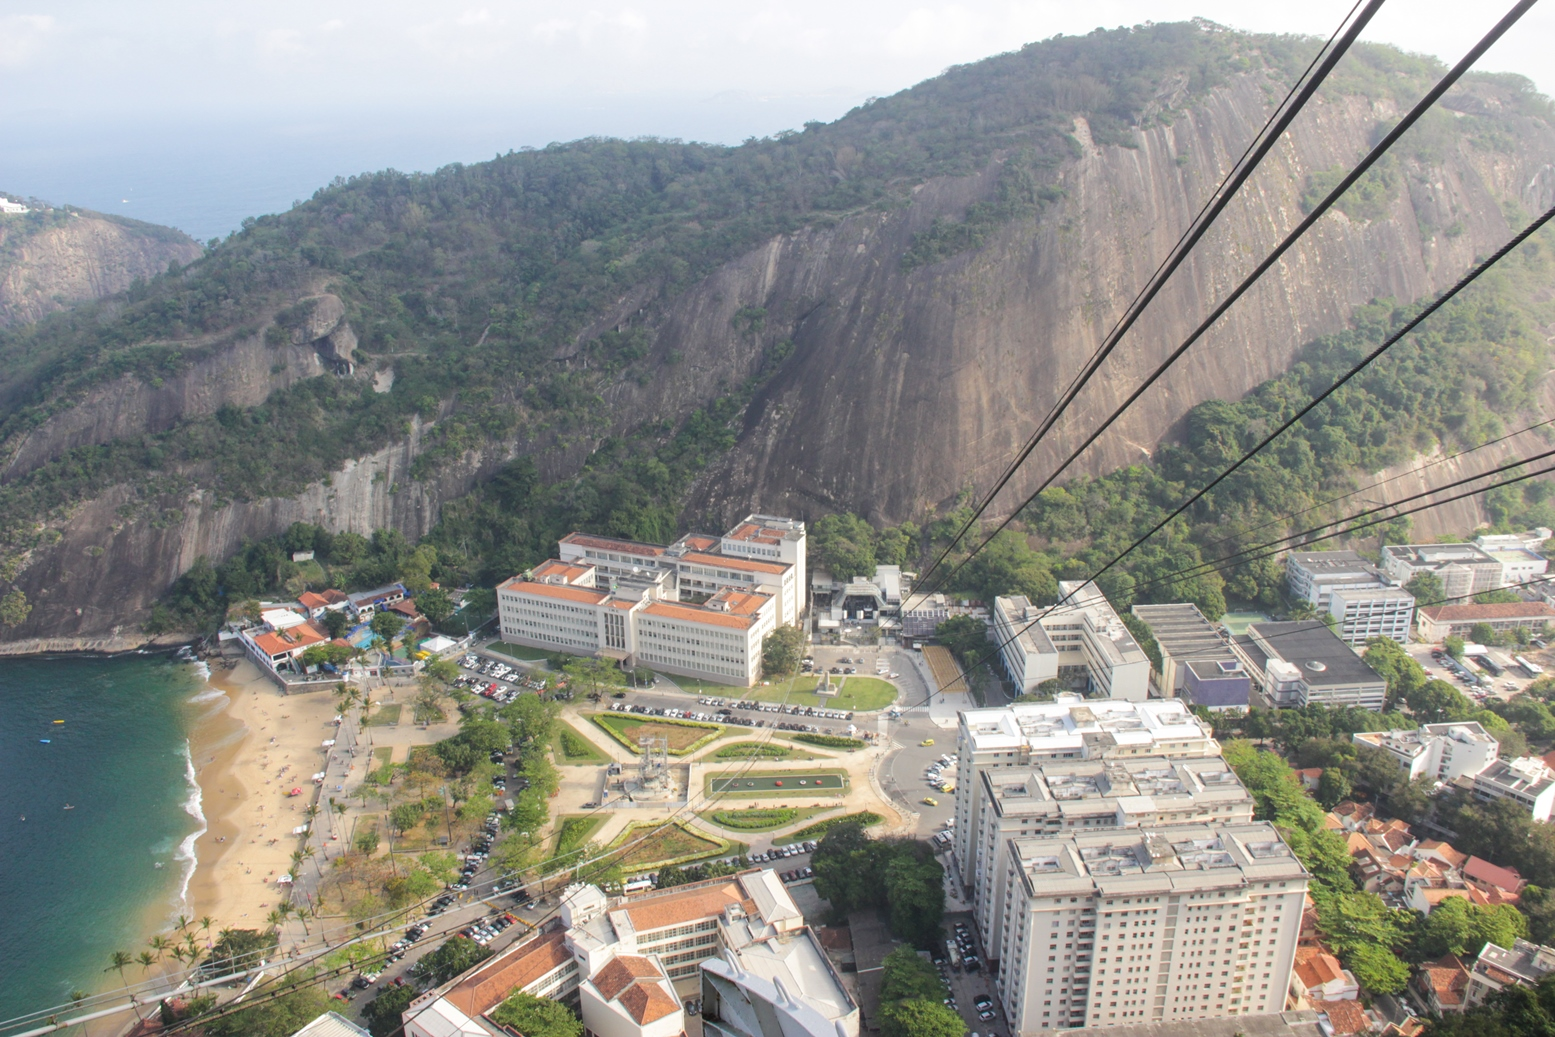 -week-rio-reach-sugarloaf-mountain-peak-cable-car-2-jpg